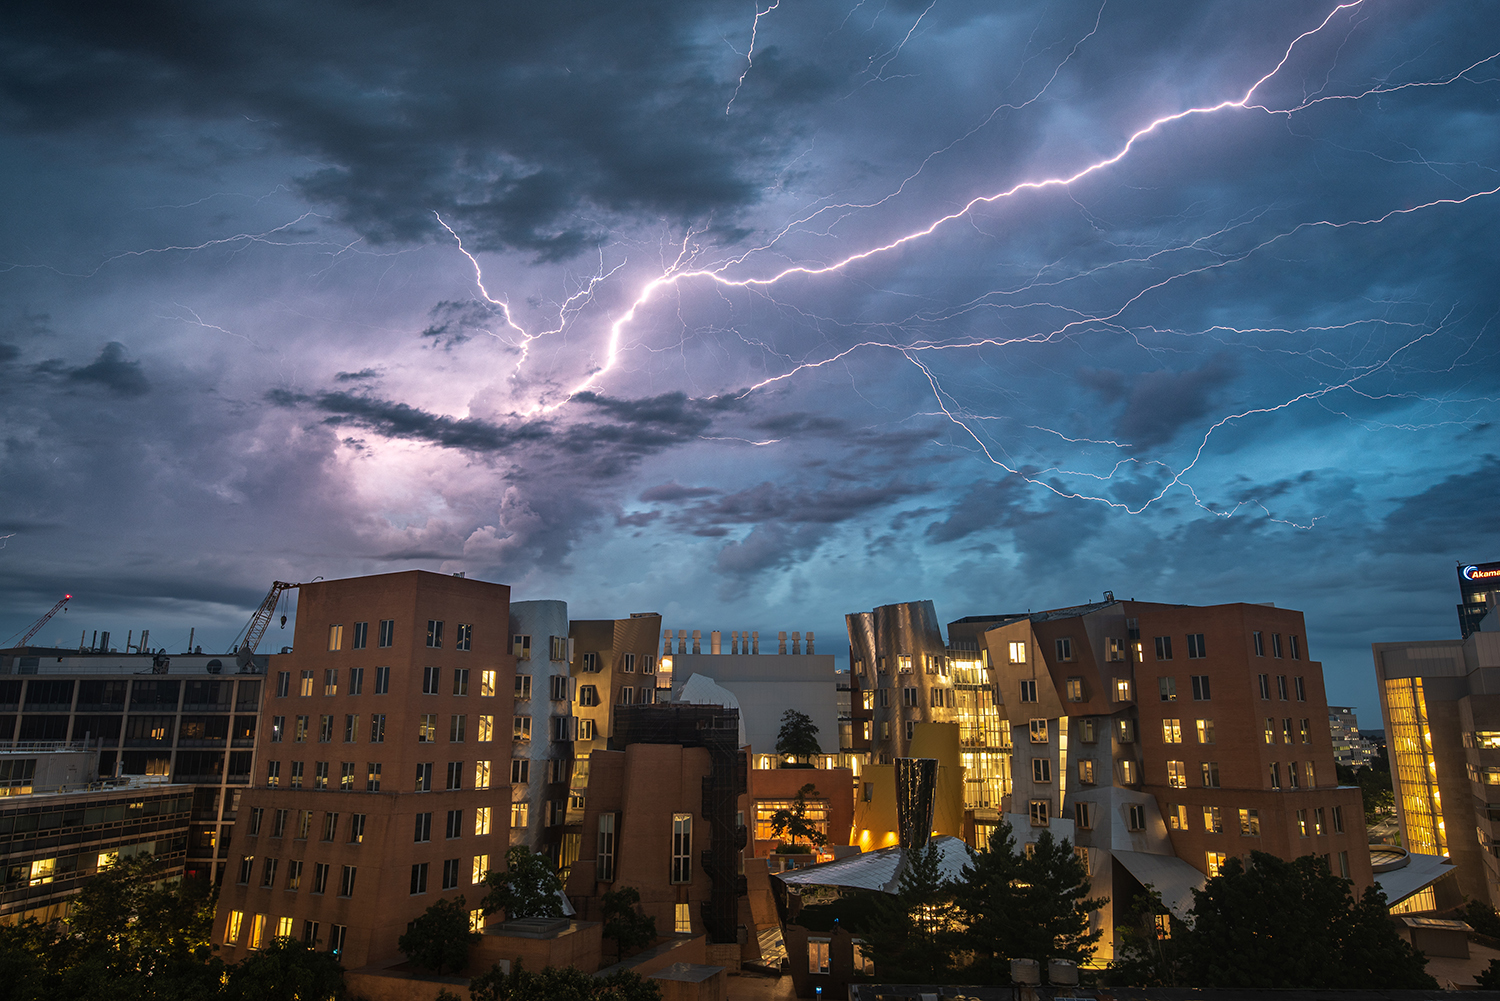 Scene at MIT: In a stroke of lightning, the beauty of nature and architecture